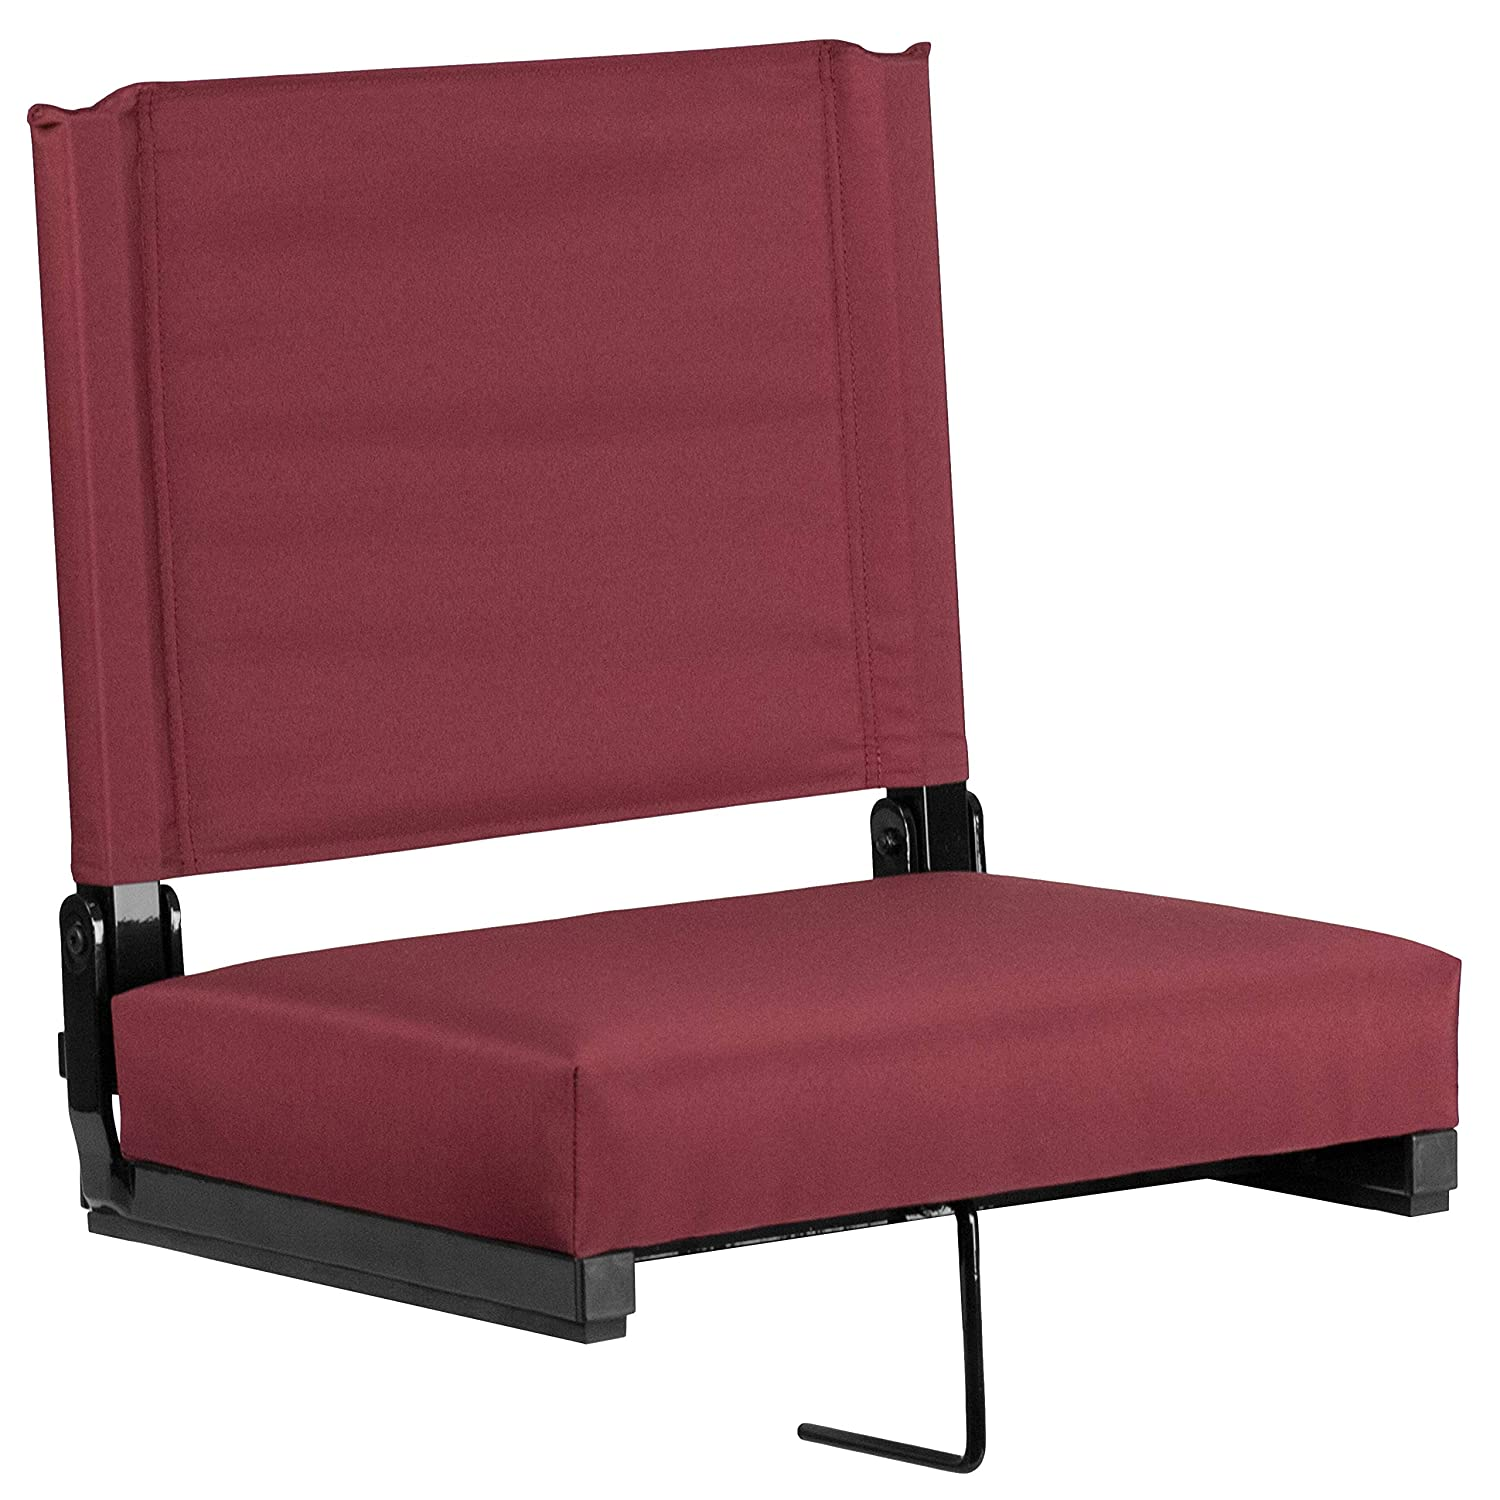 Flash Furniture Grandstand Comfort Seats by Flash with Ultra-Padded Seat in Maroon